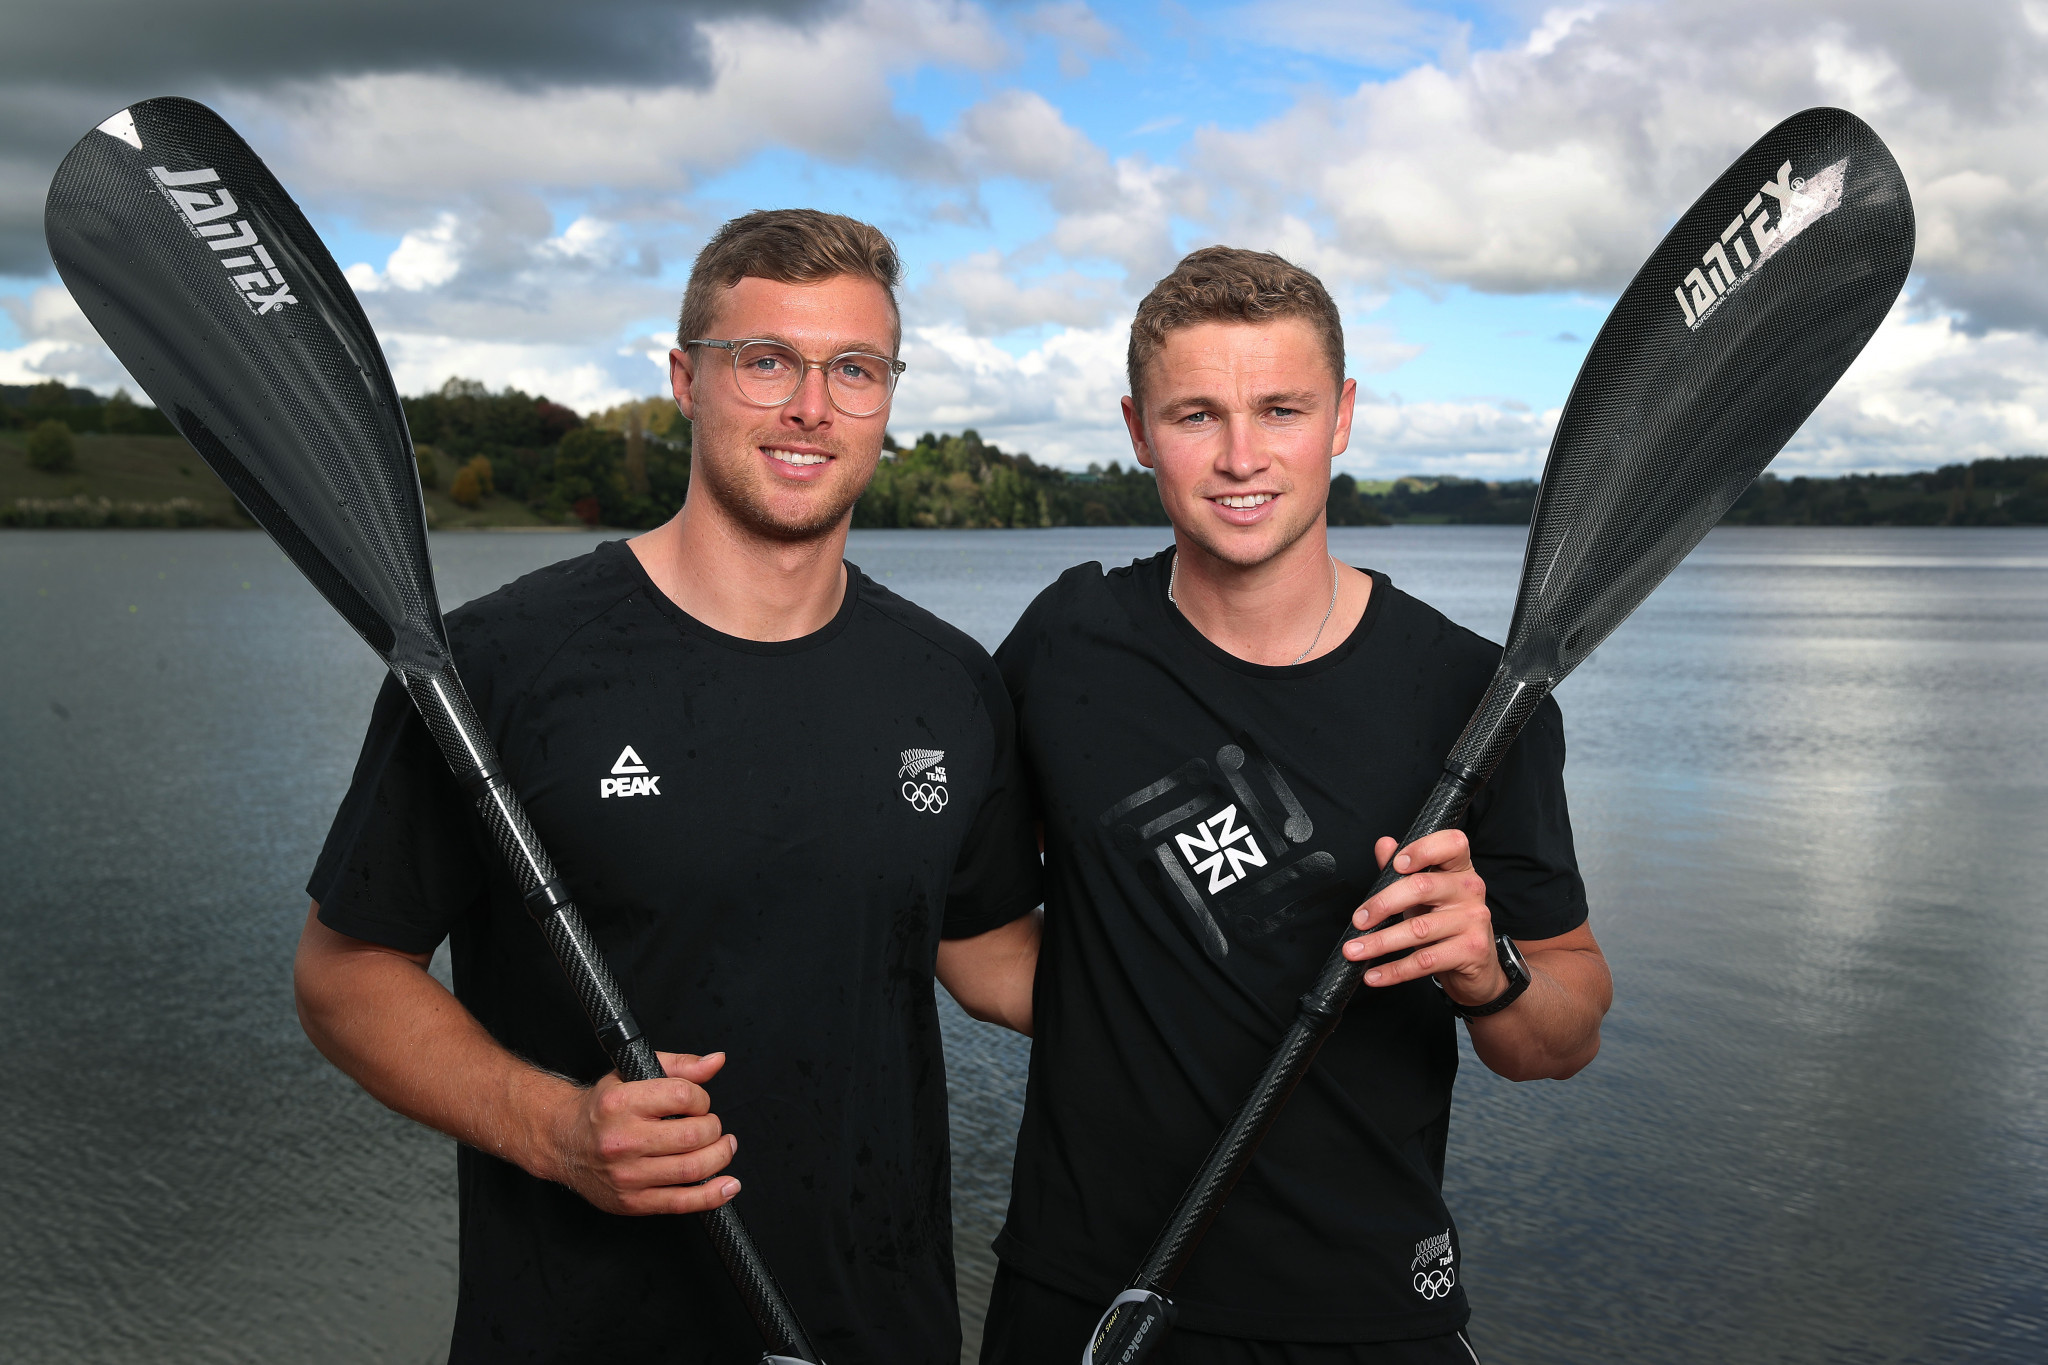 Canoe sprinters Brown and Imrie set for Olympic debuts after New Zealand selection